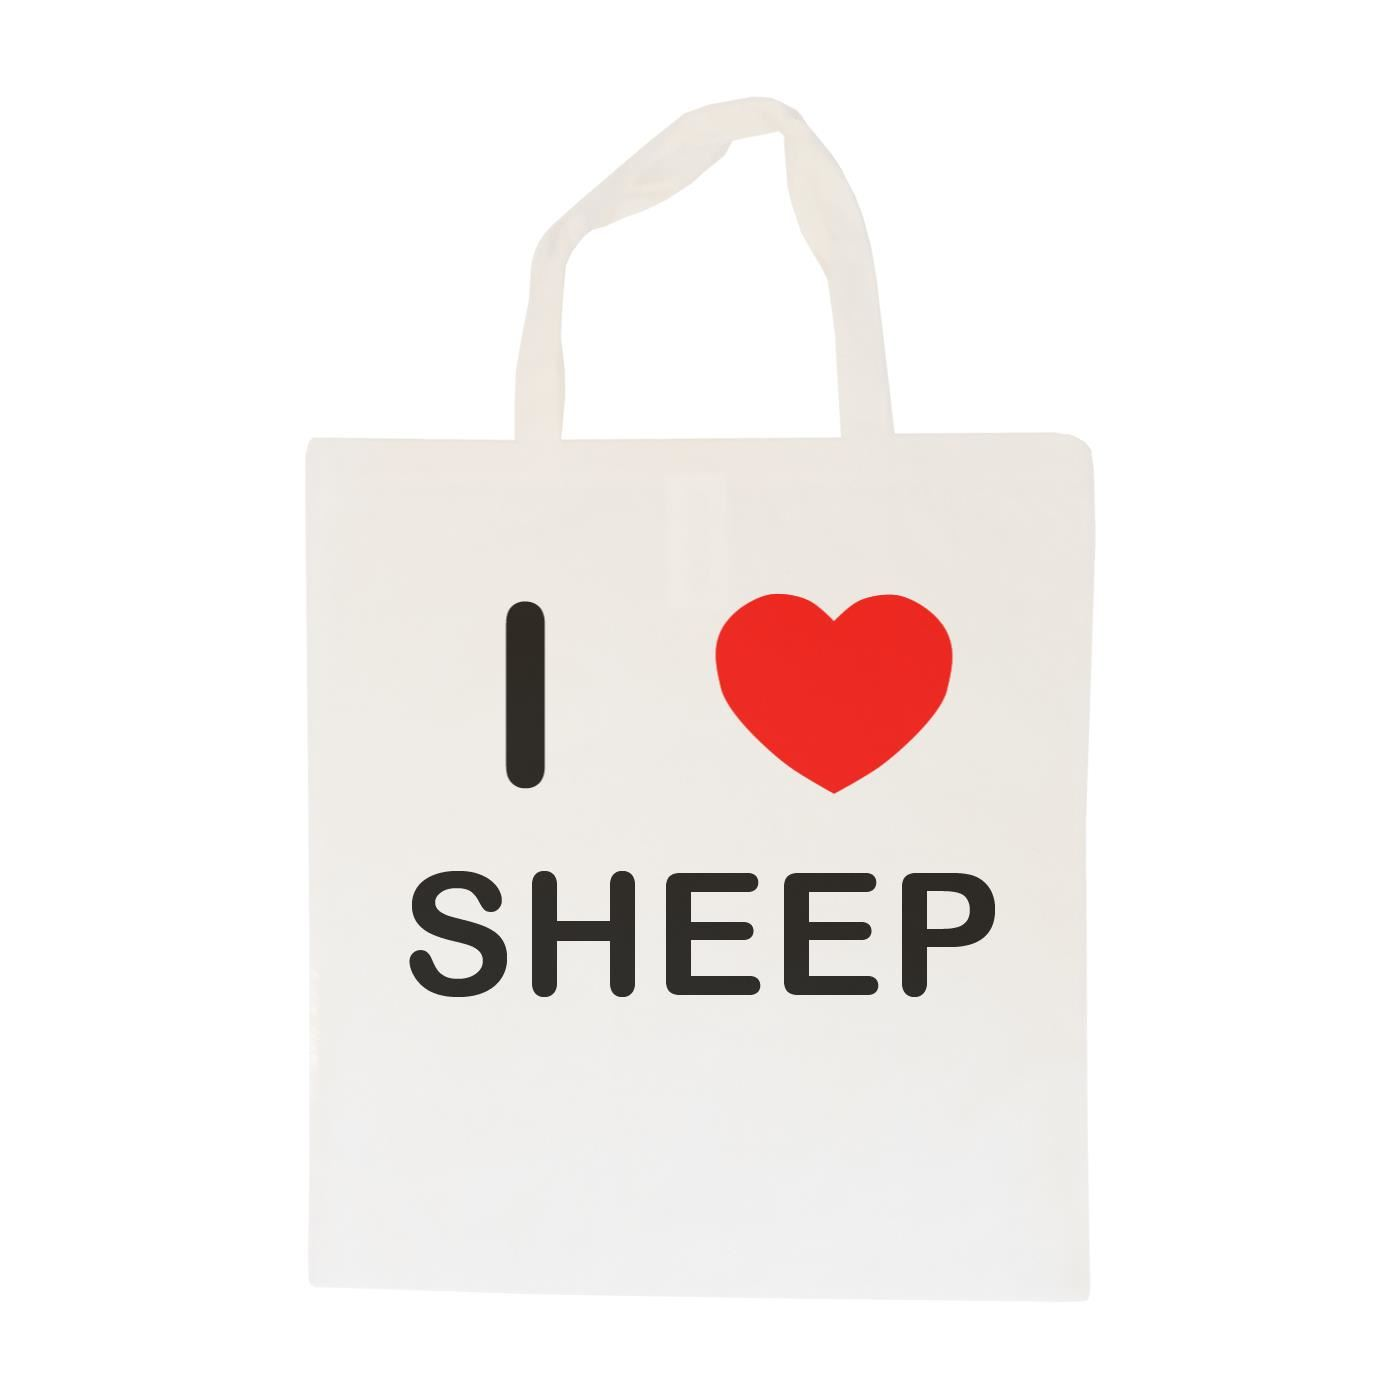 I Love Sheep - Cotton Bag | Size choice Tote, Shopper or Sling